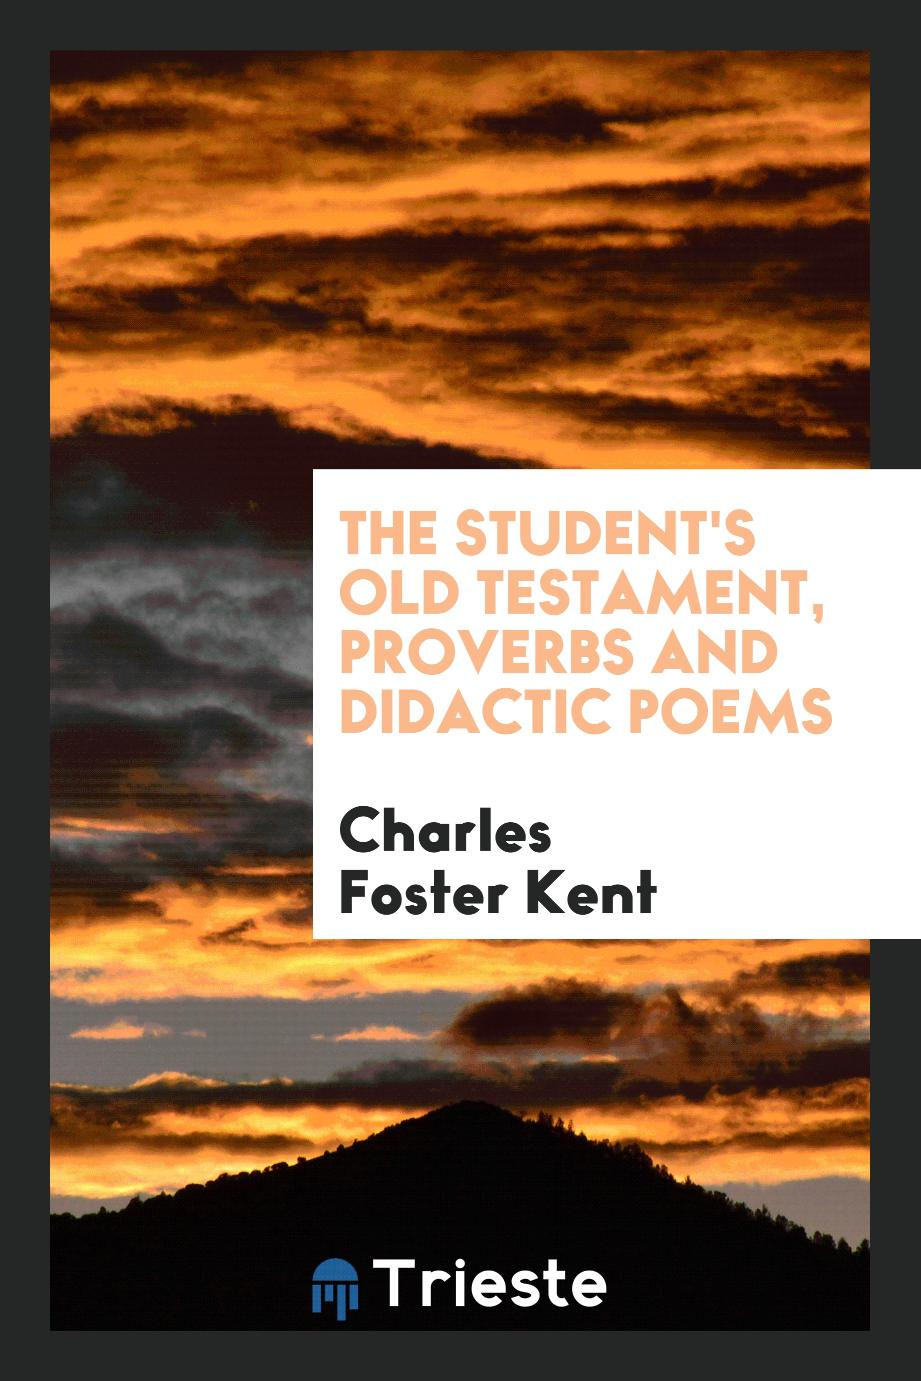 The student's Old Testament, proverbs and didactic poems